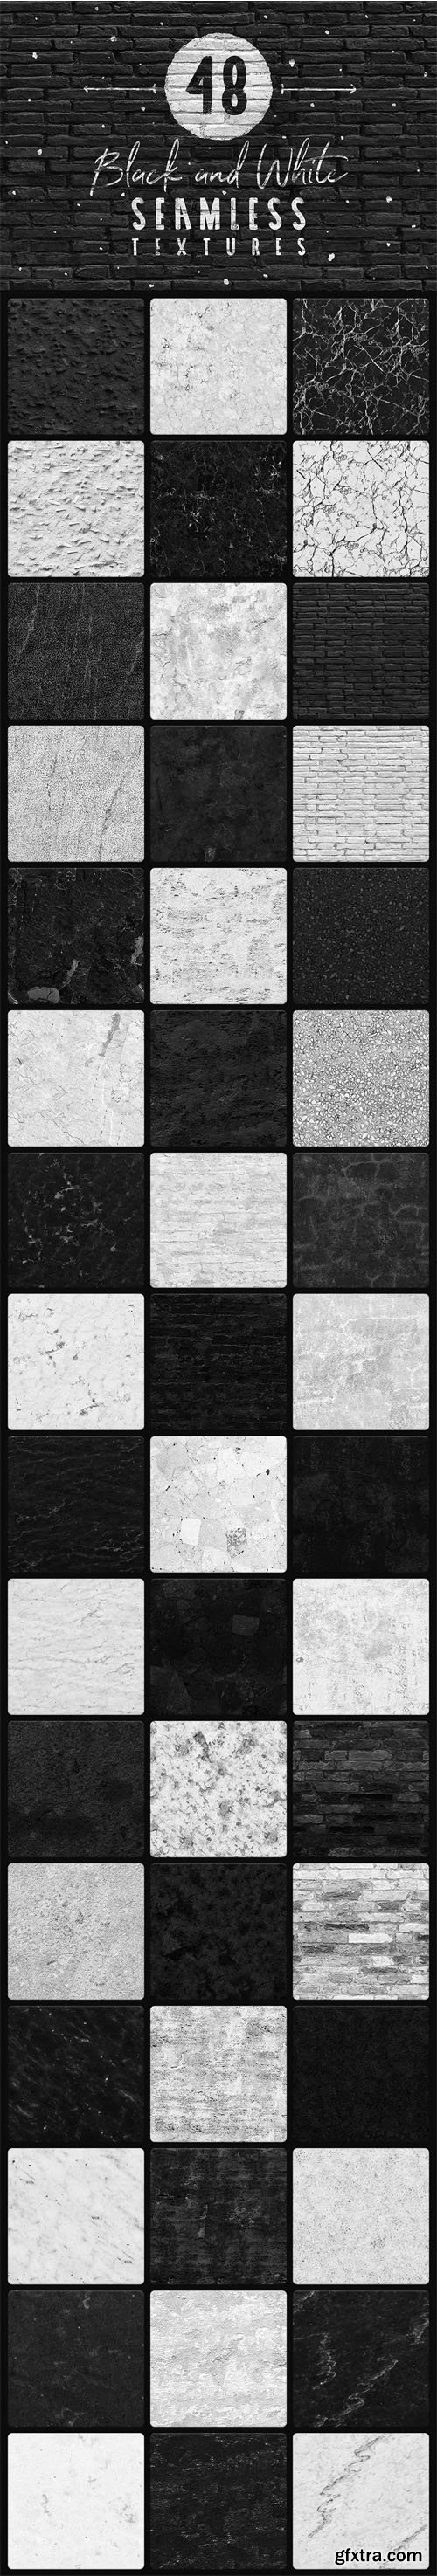 48 B/W Seamless Textures Collection